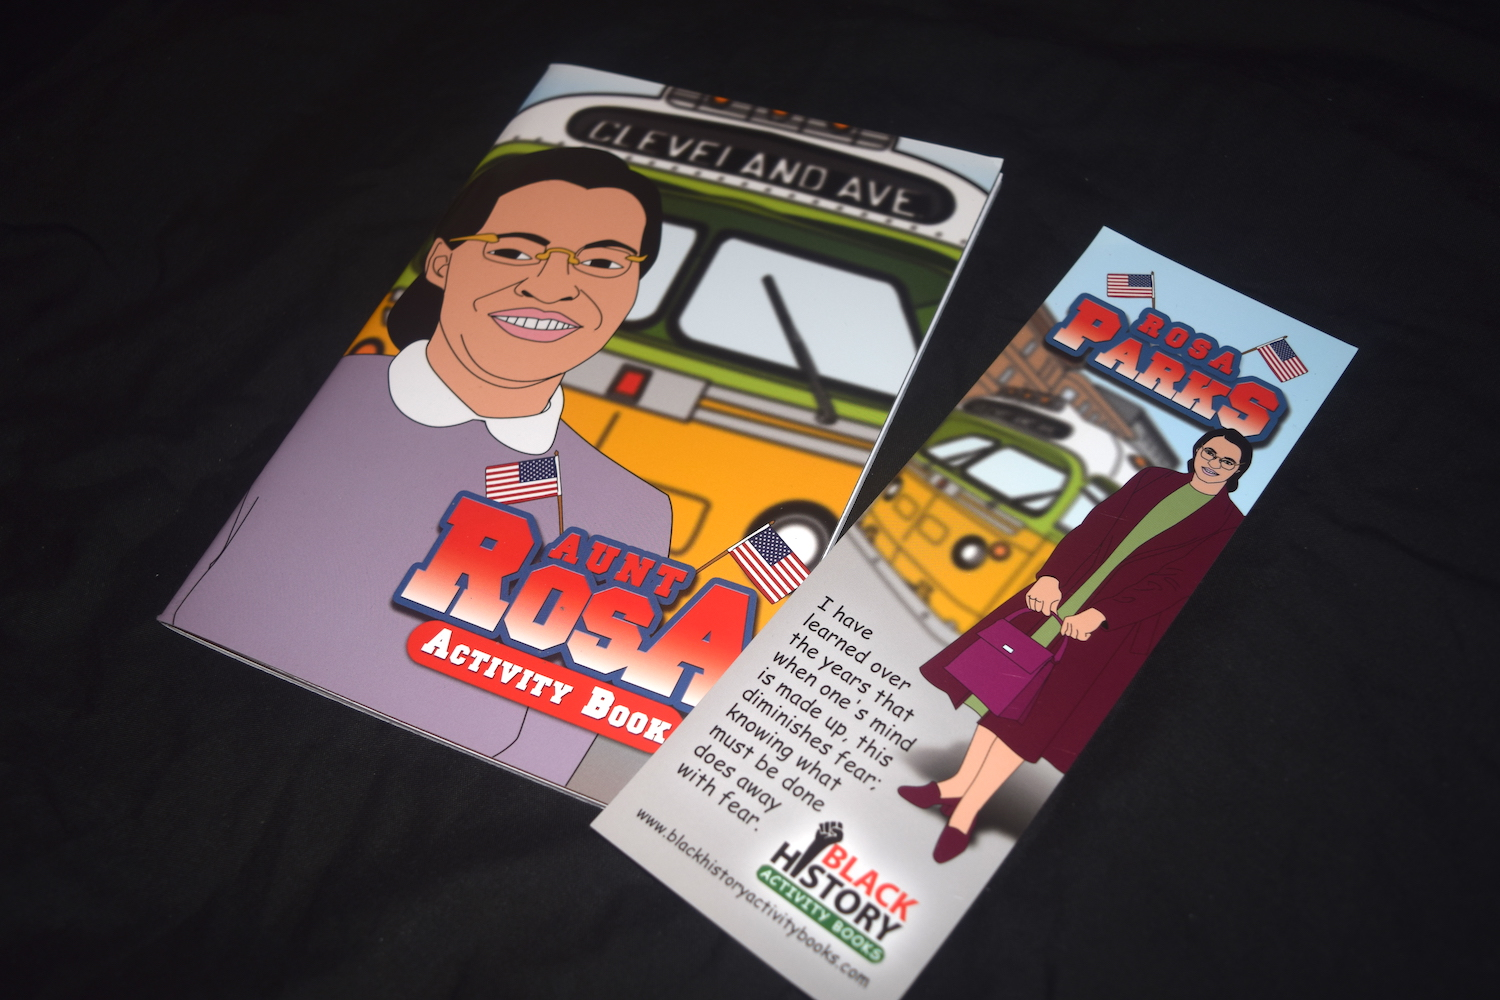 Black History Activity Books Gallery Image